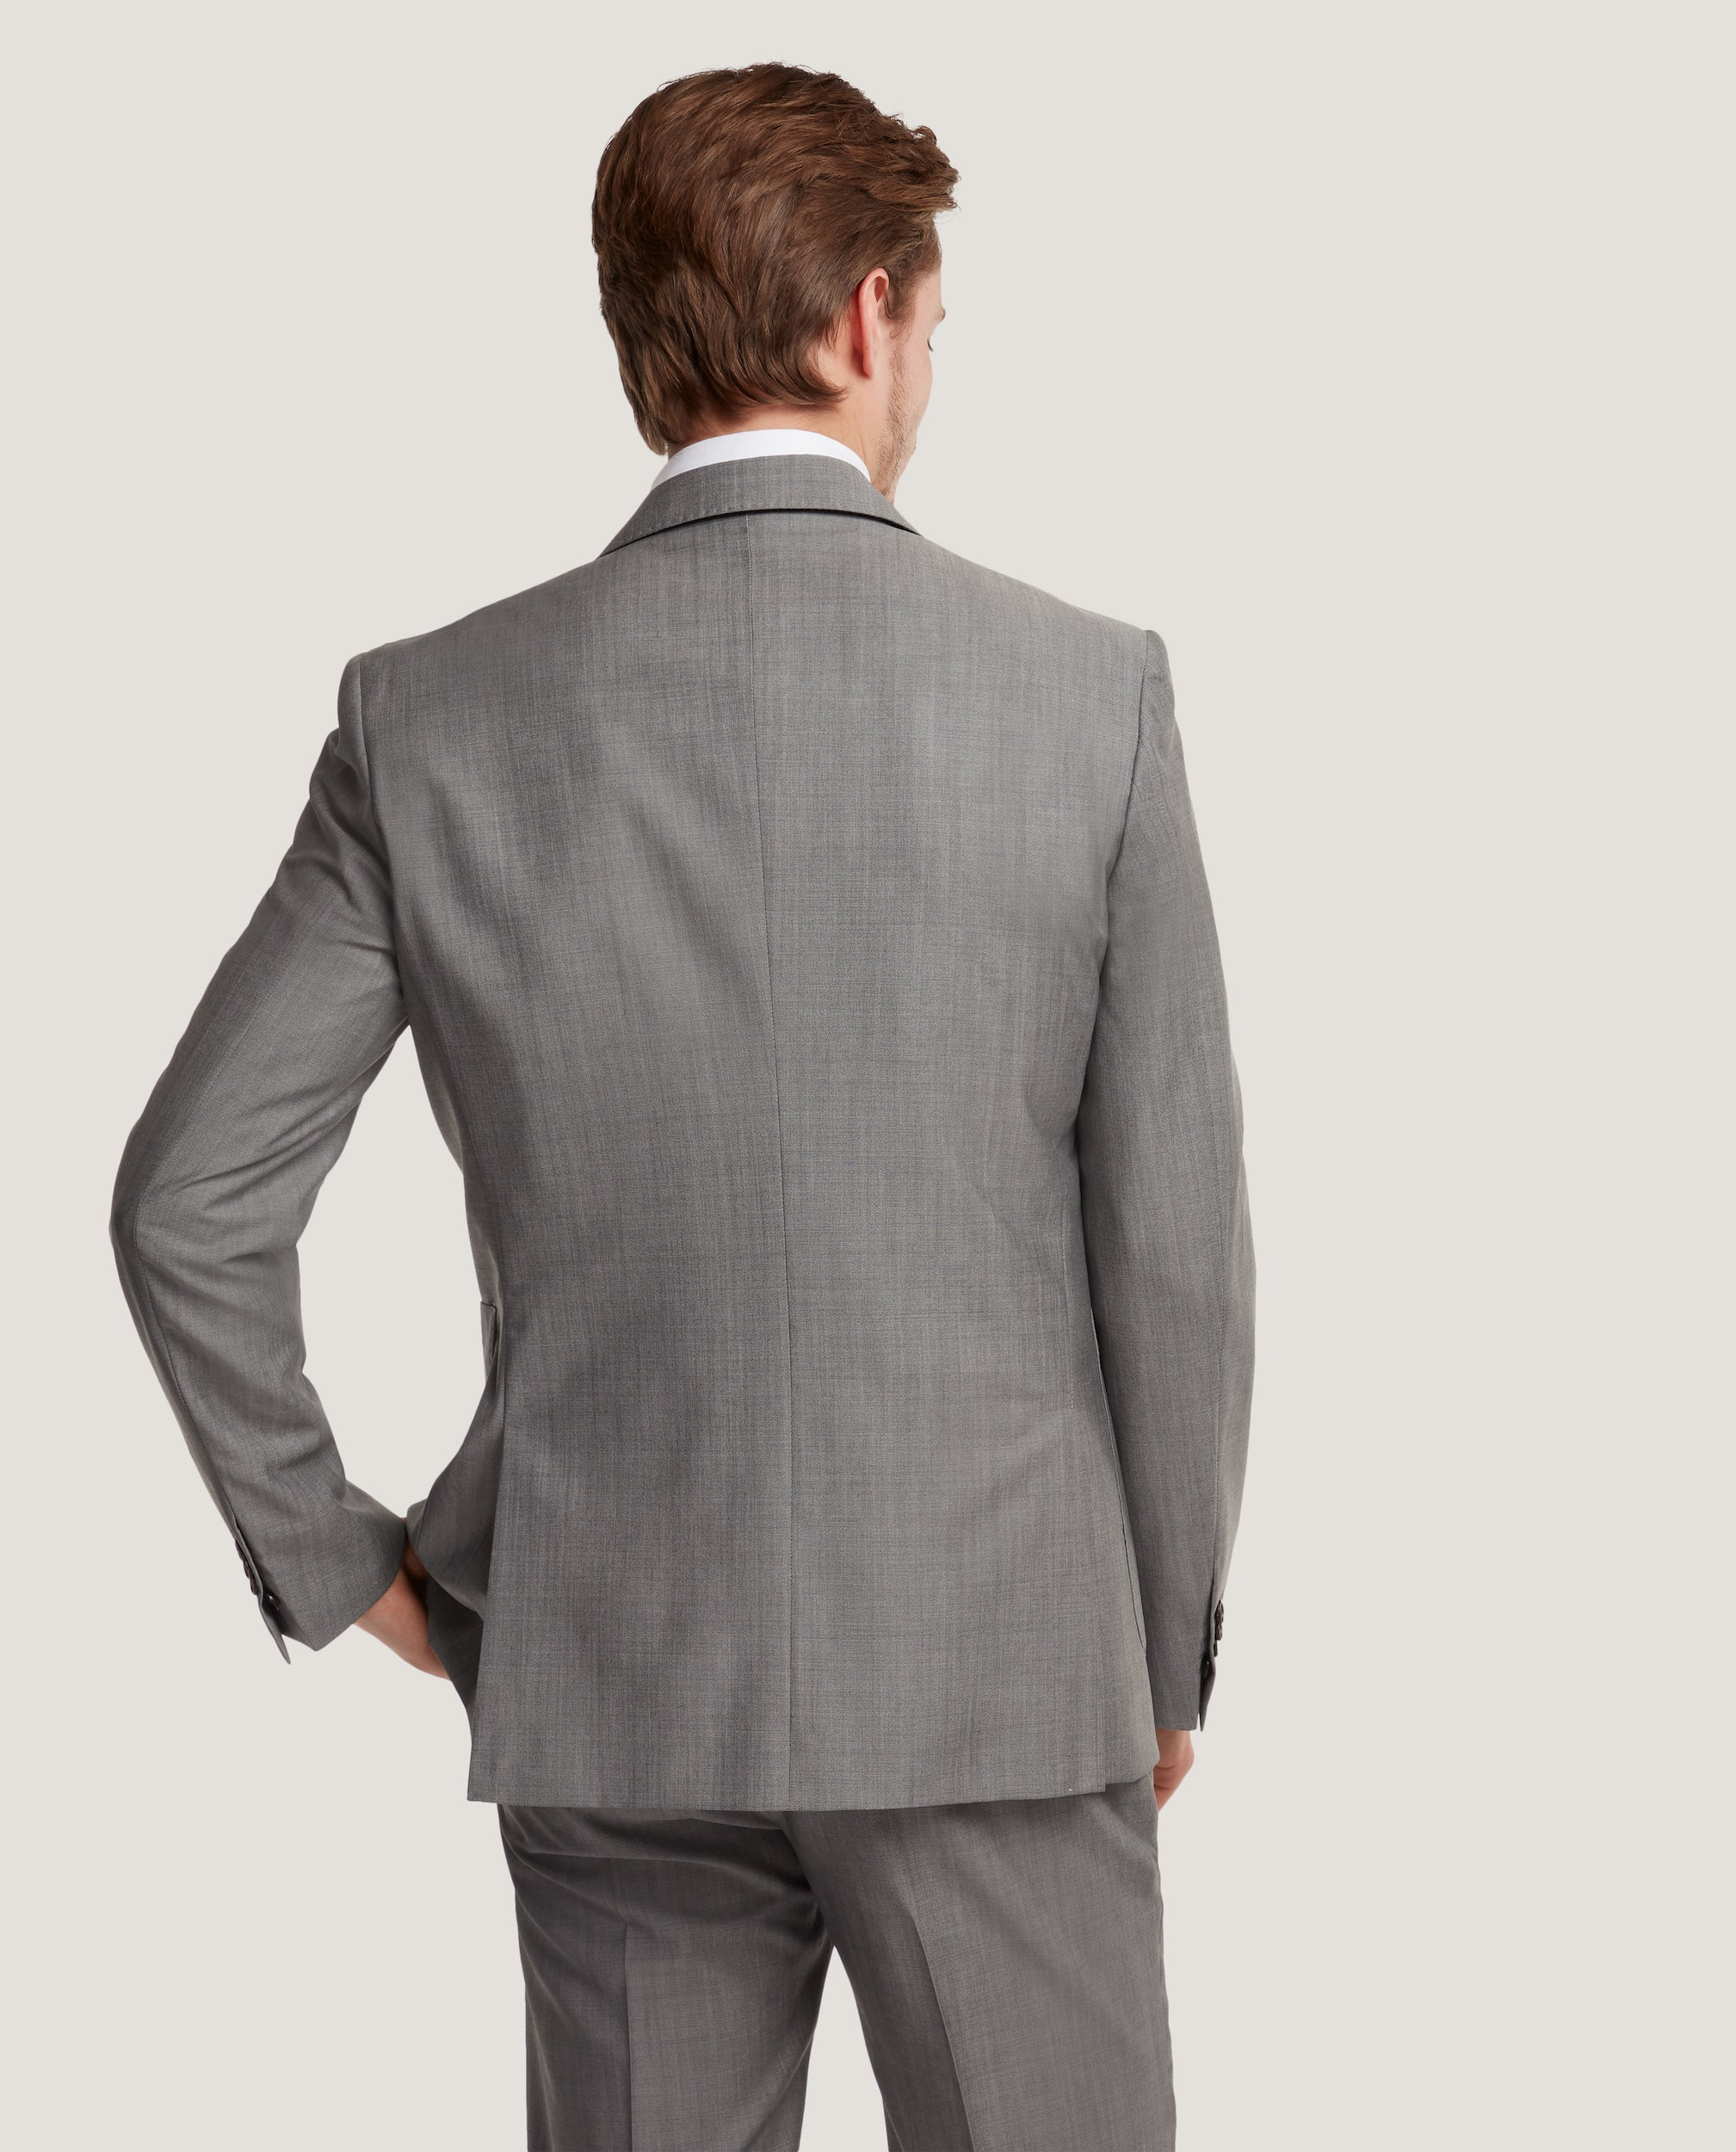 LLORO Single breasted peak lapel suit | Light Grey